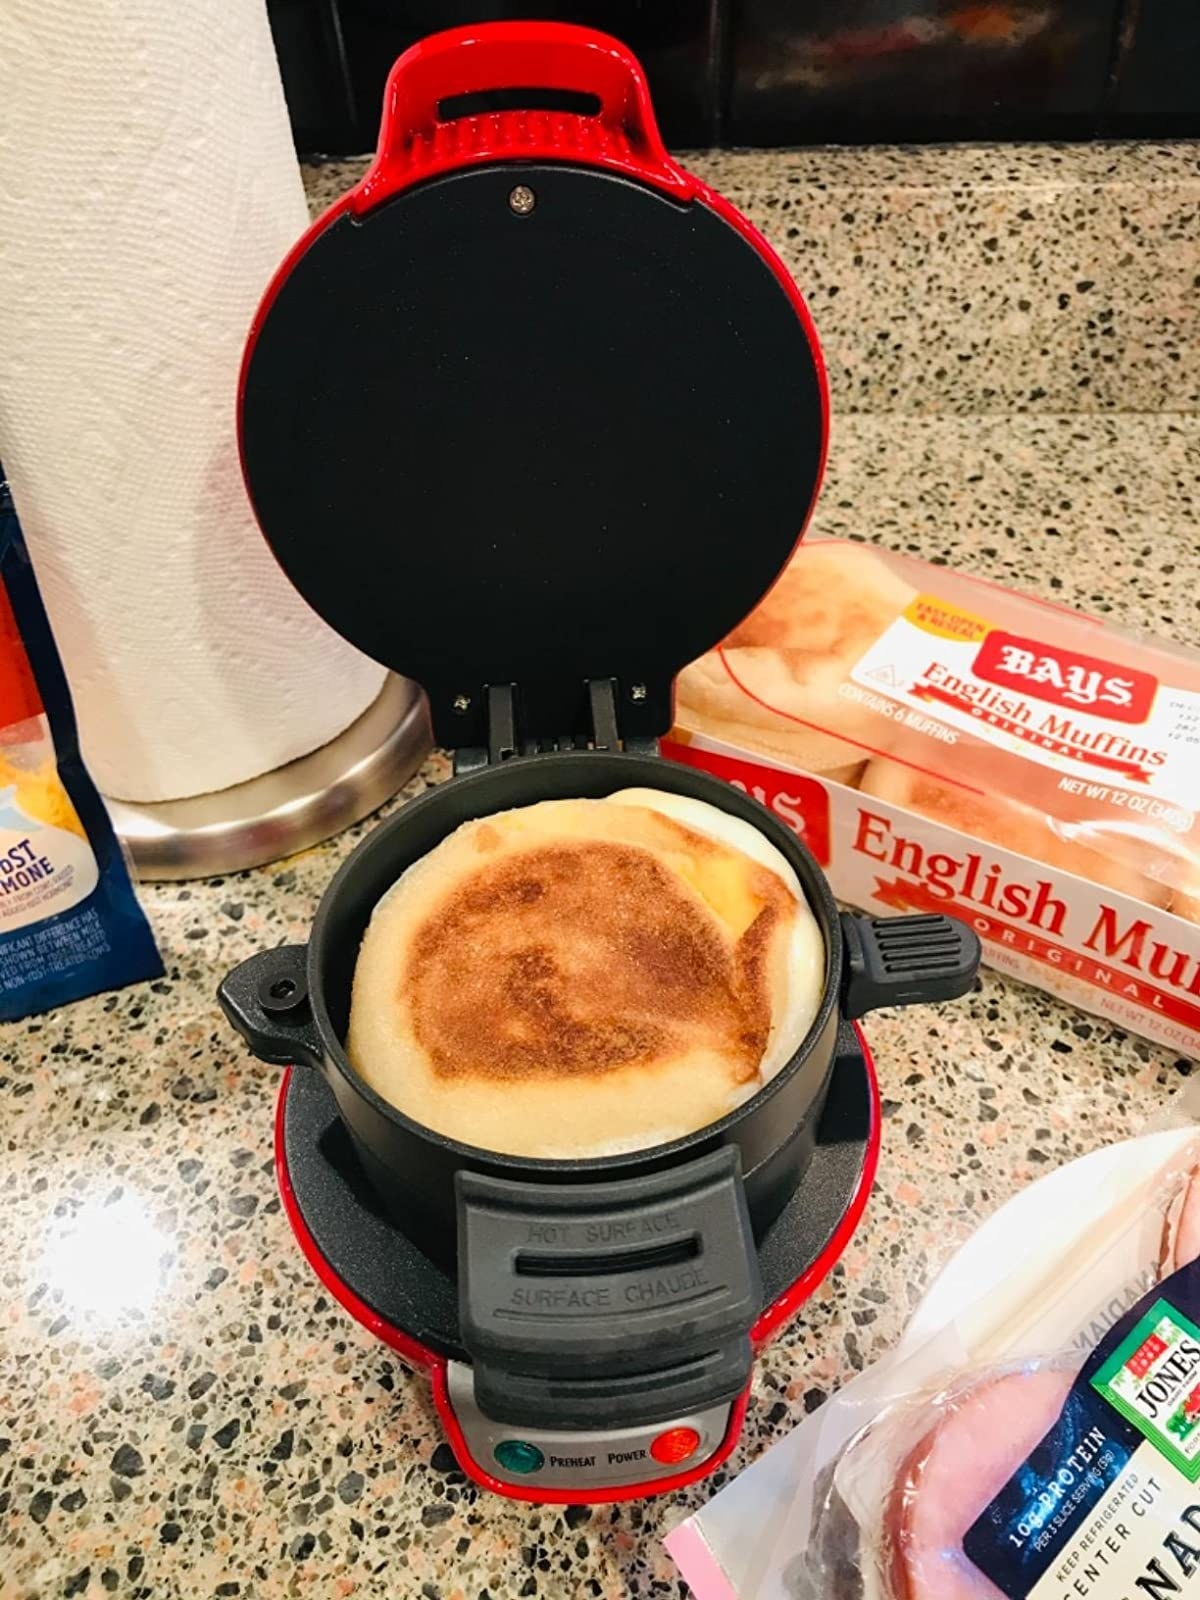 The small sandwich maker in red